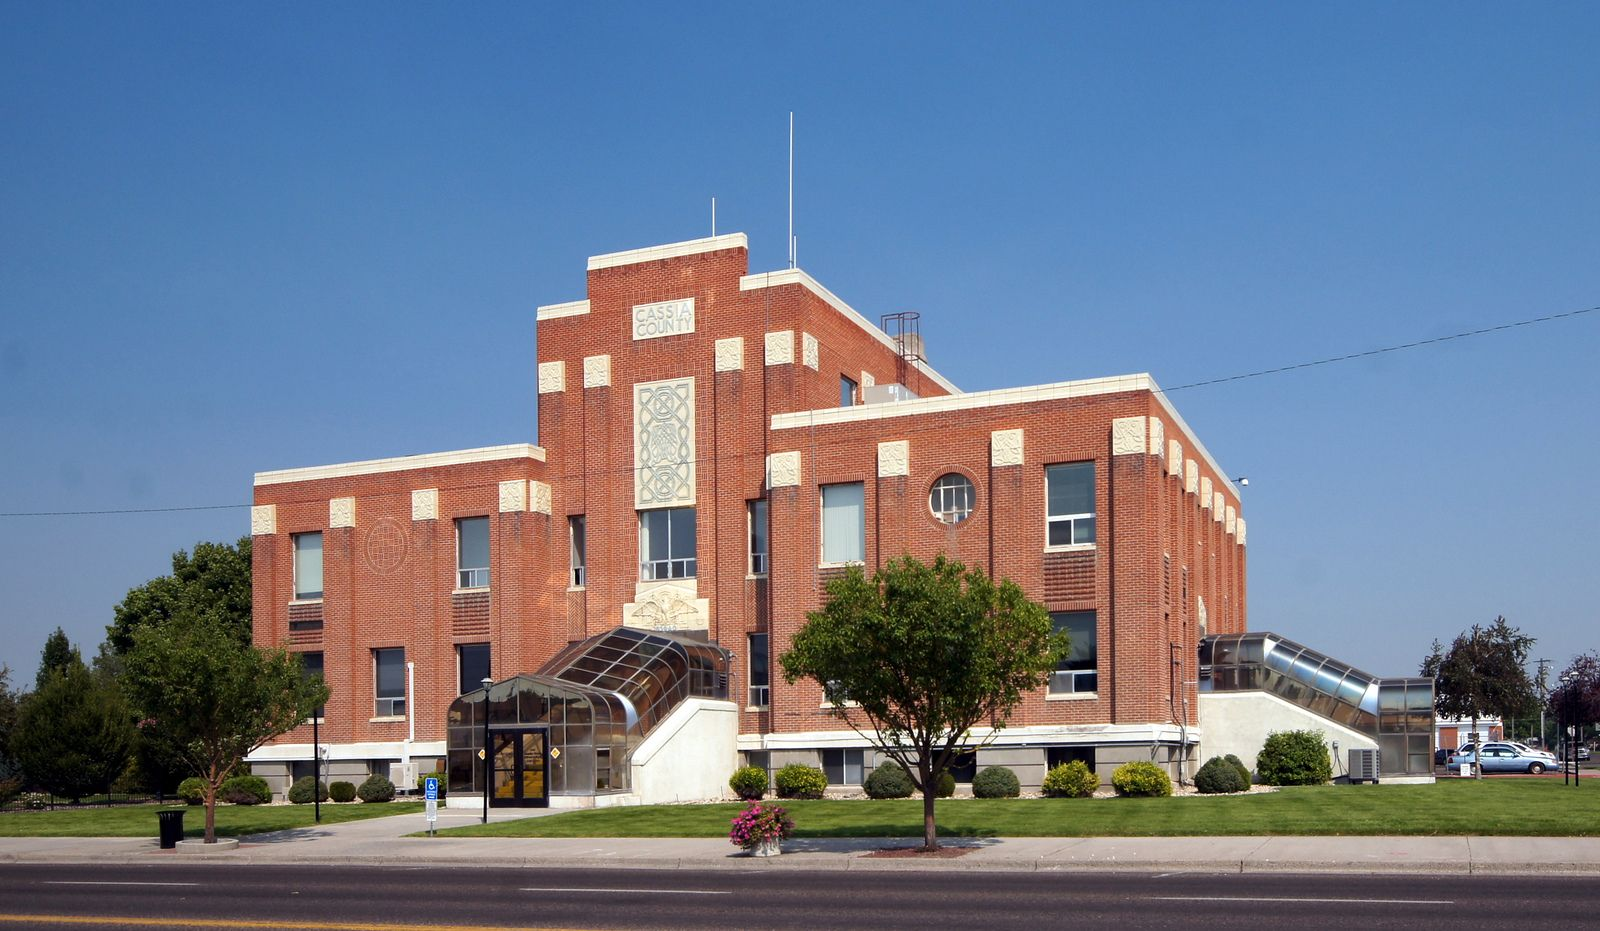 1939 wpa building cassia county courthouse burley